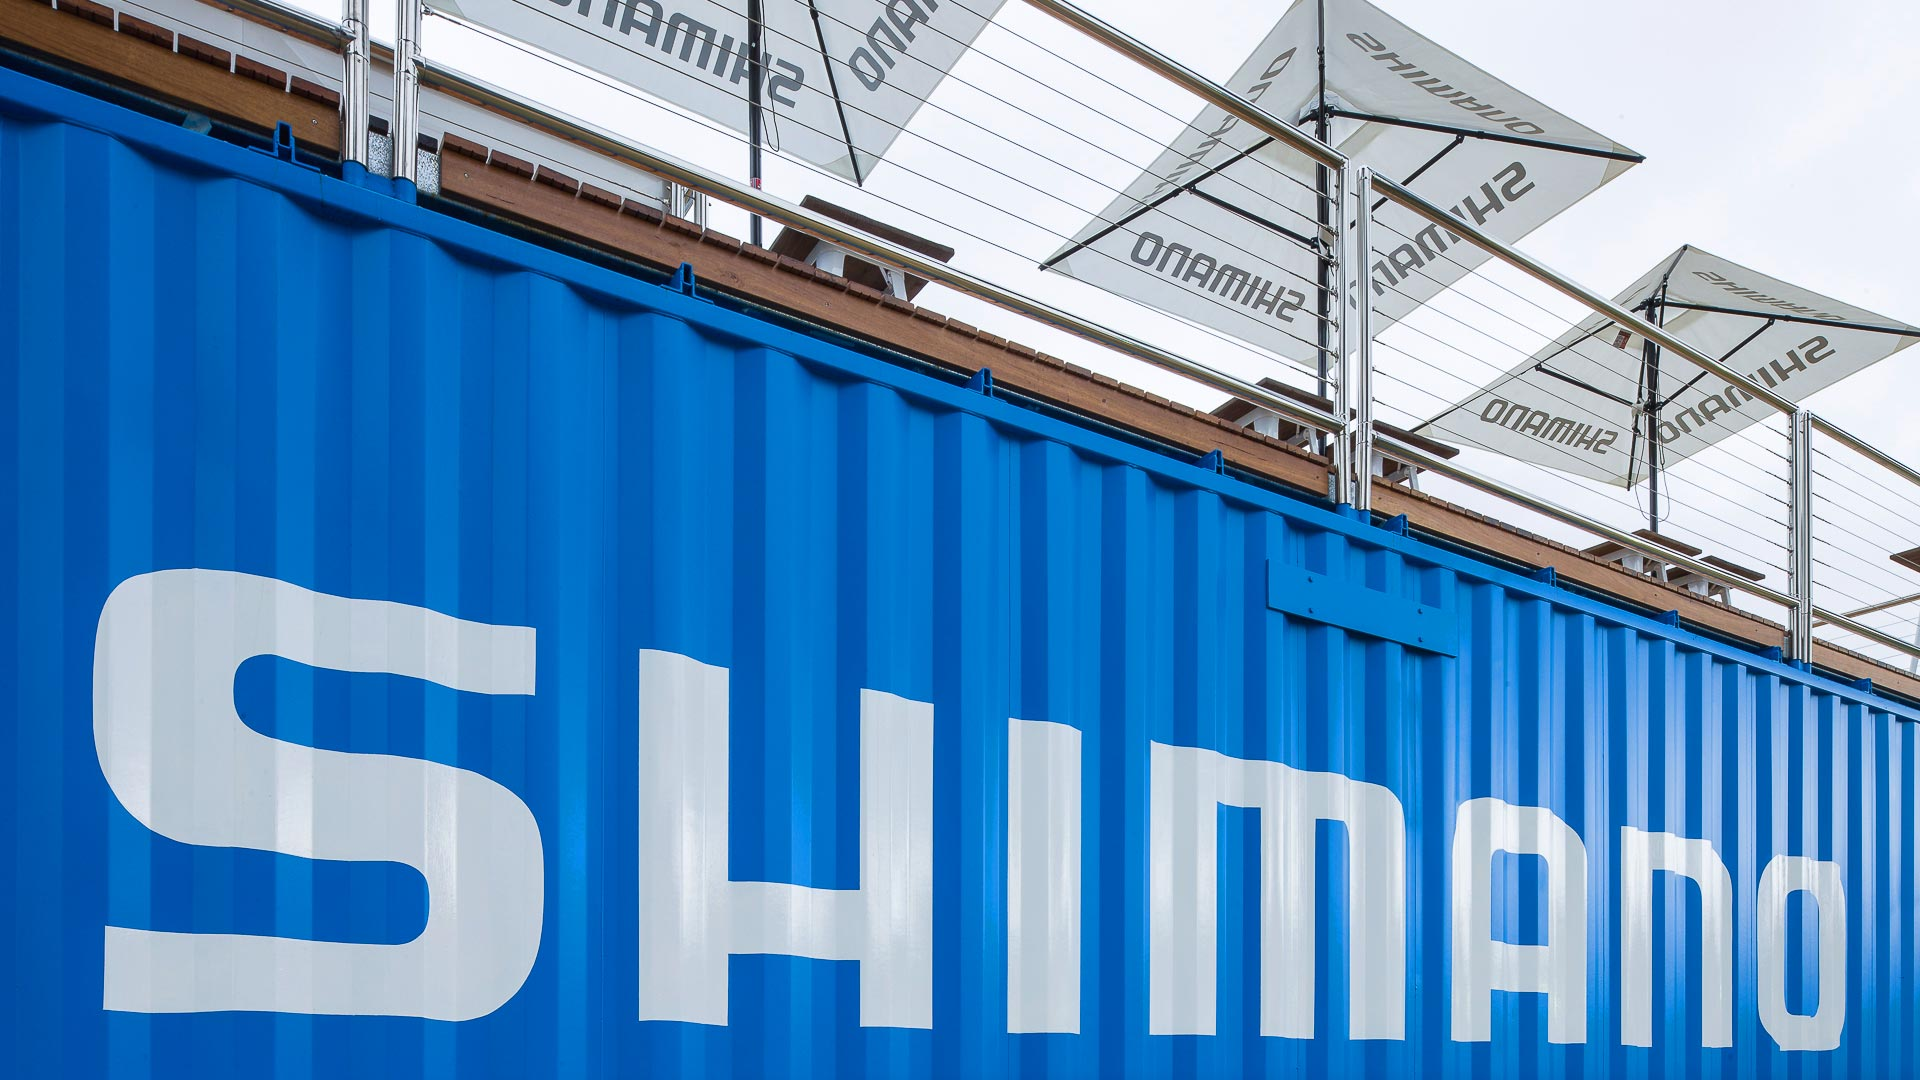 Shimano container